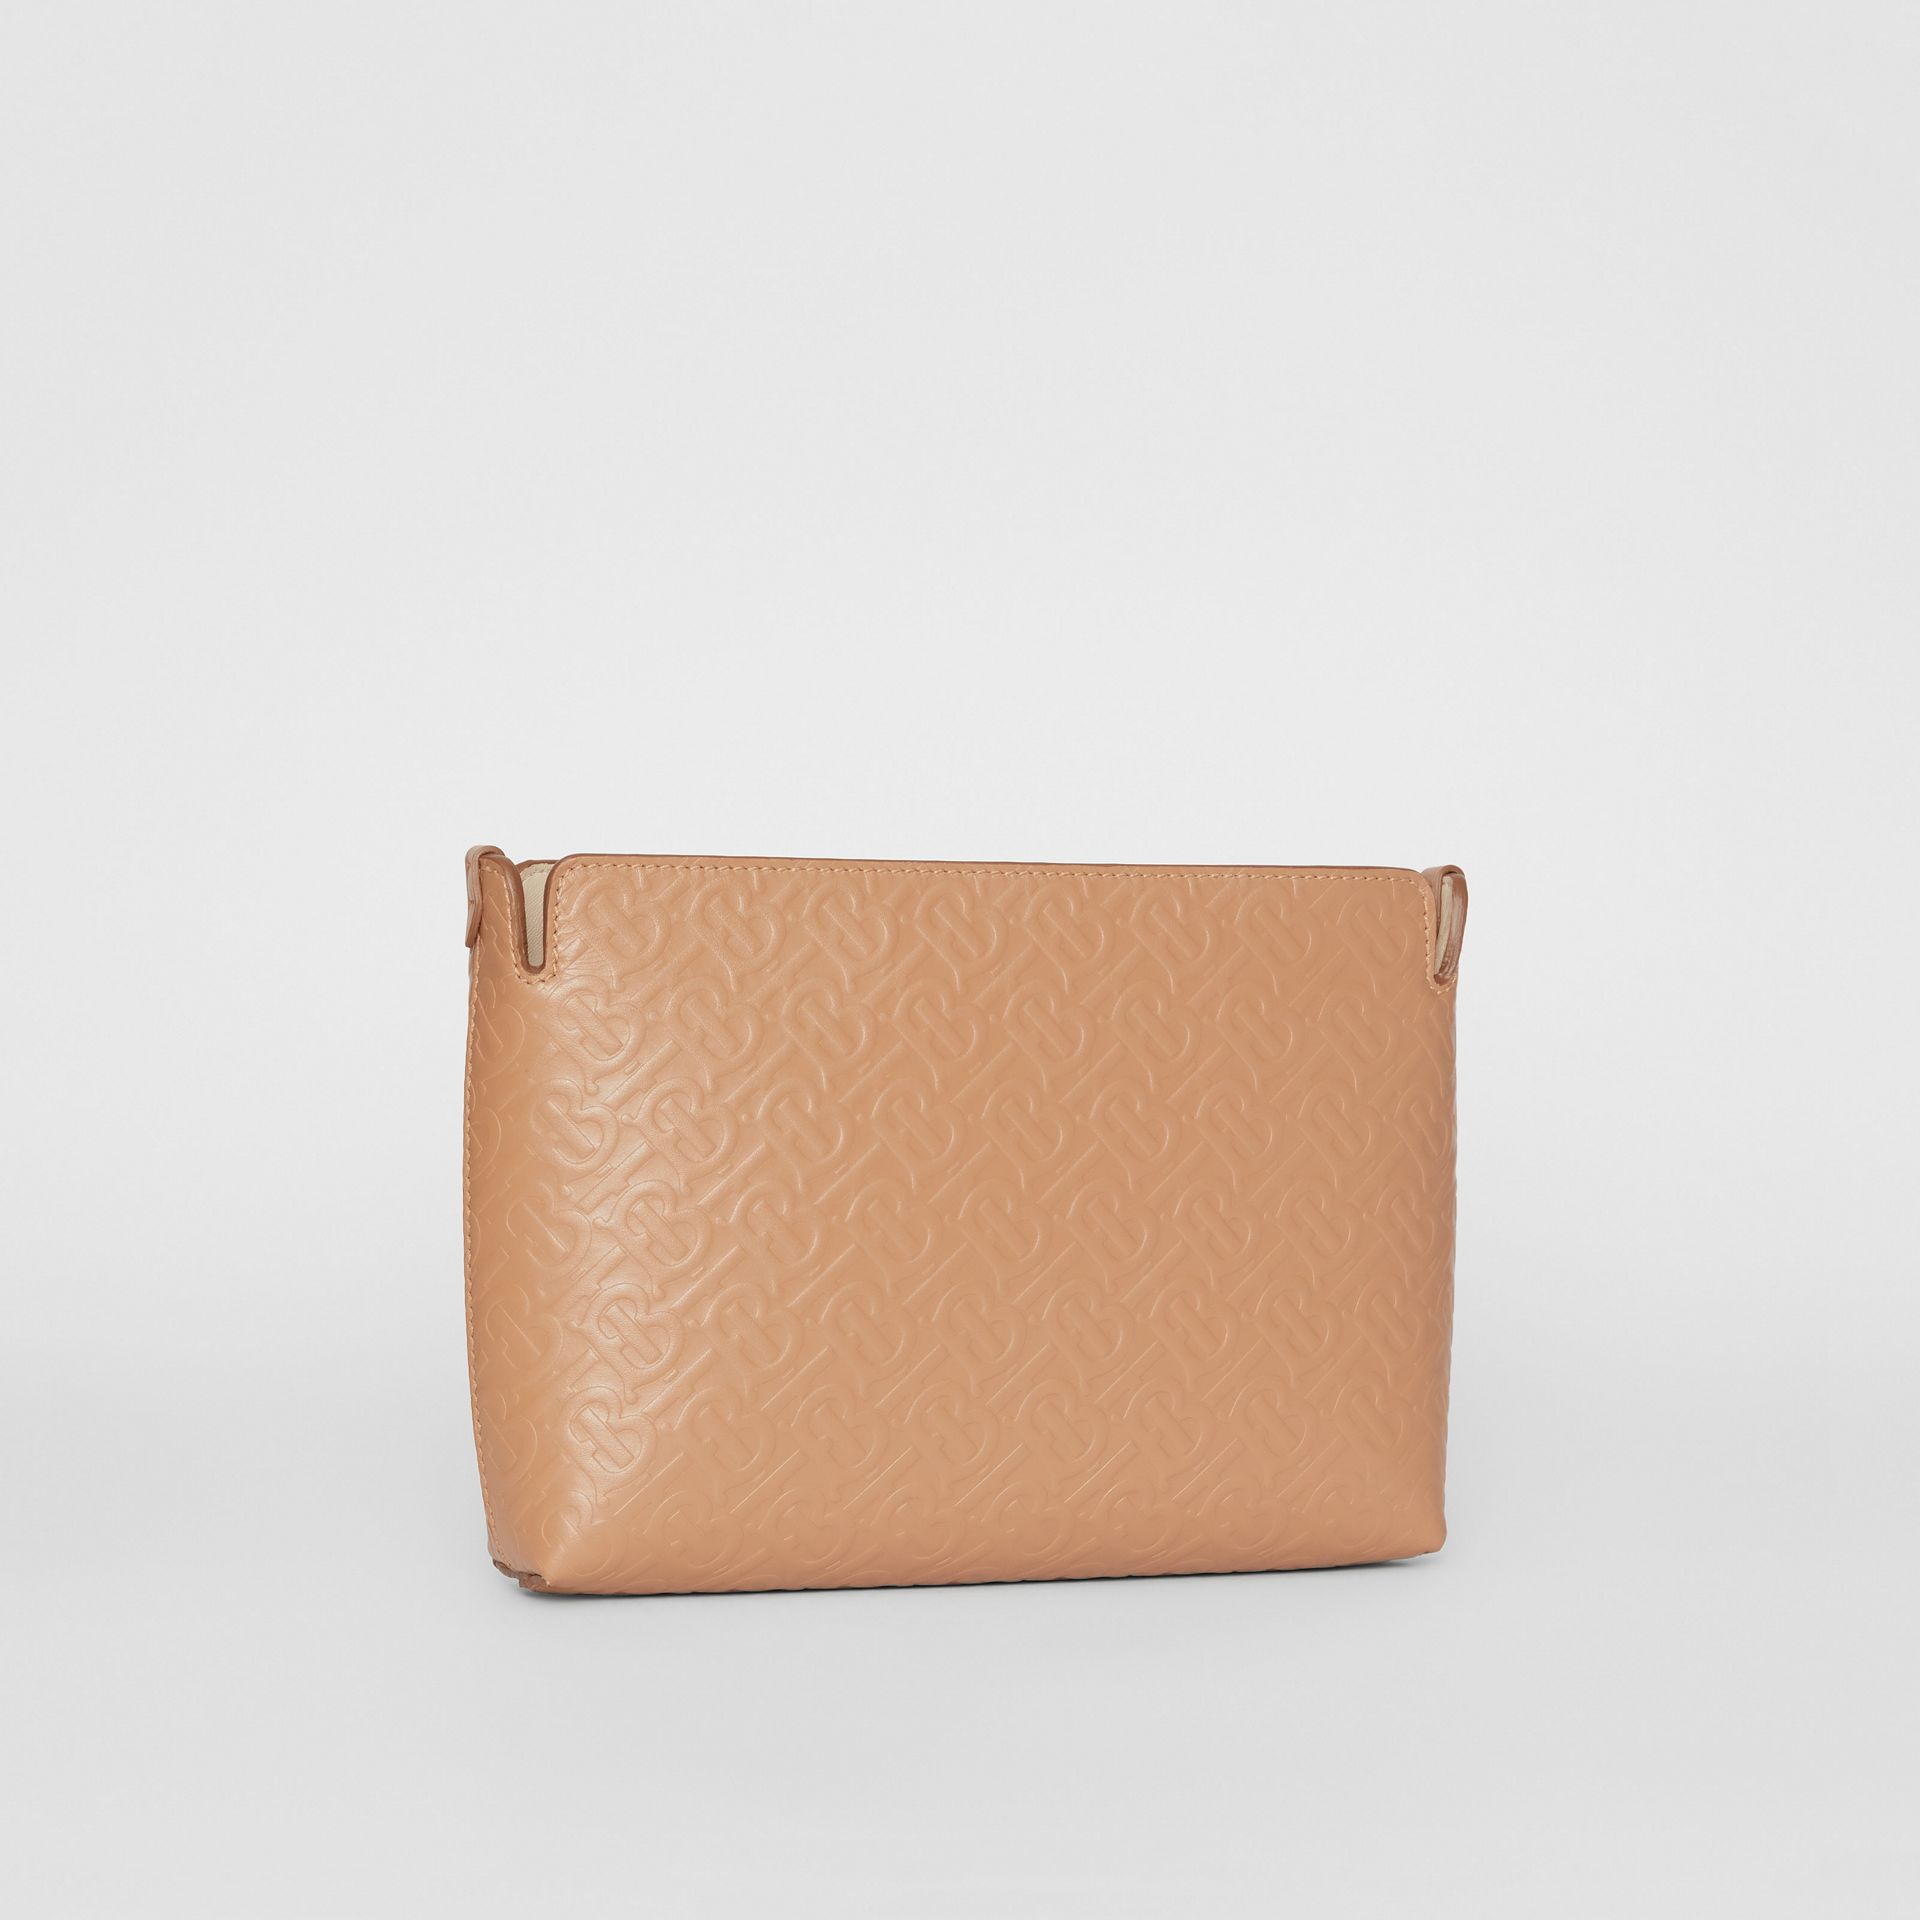 Medium Monogram Leather Clutch in Light Camel - Women | Burberry Singapore - gallery image 4